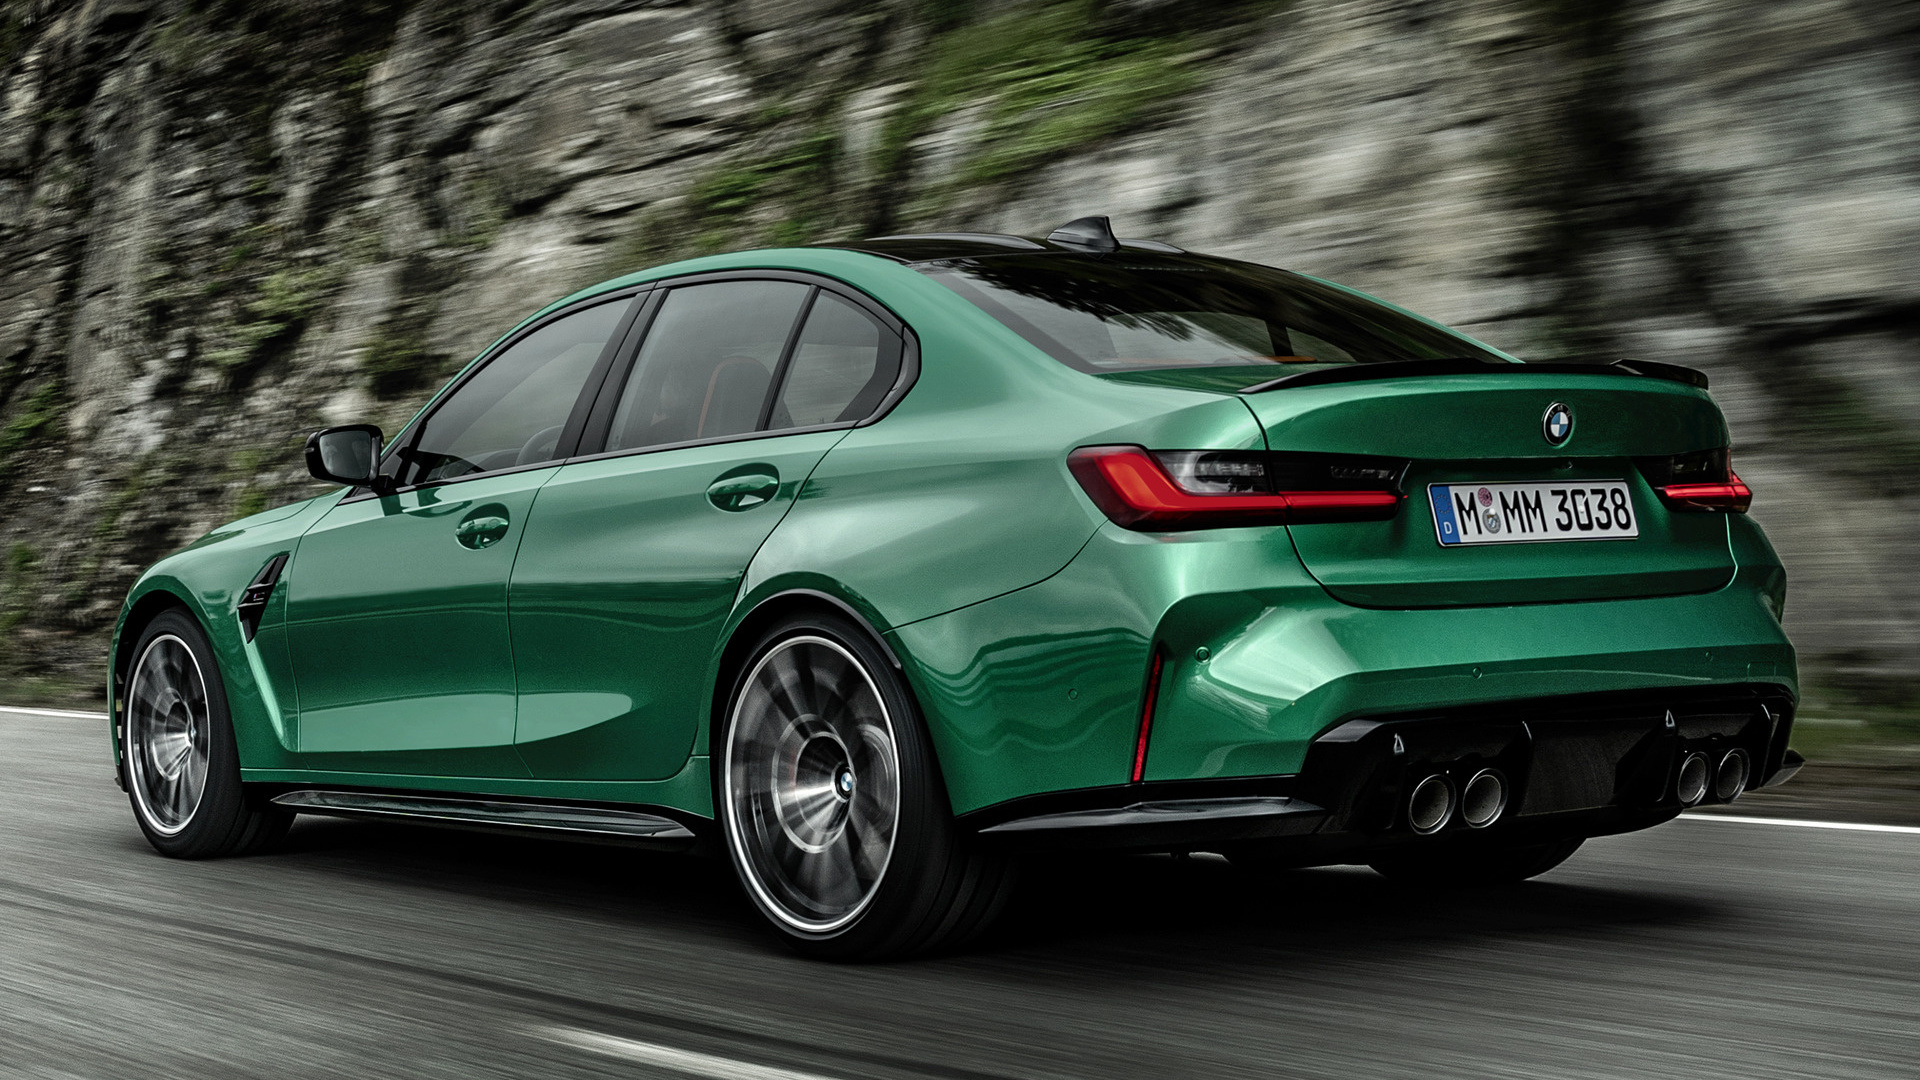 2020 bmw m3 sedan competition - wallpapers and hd images